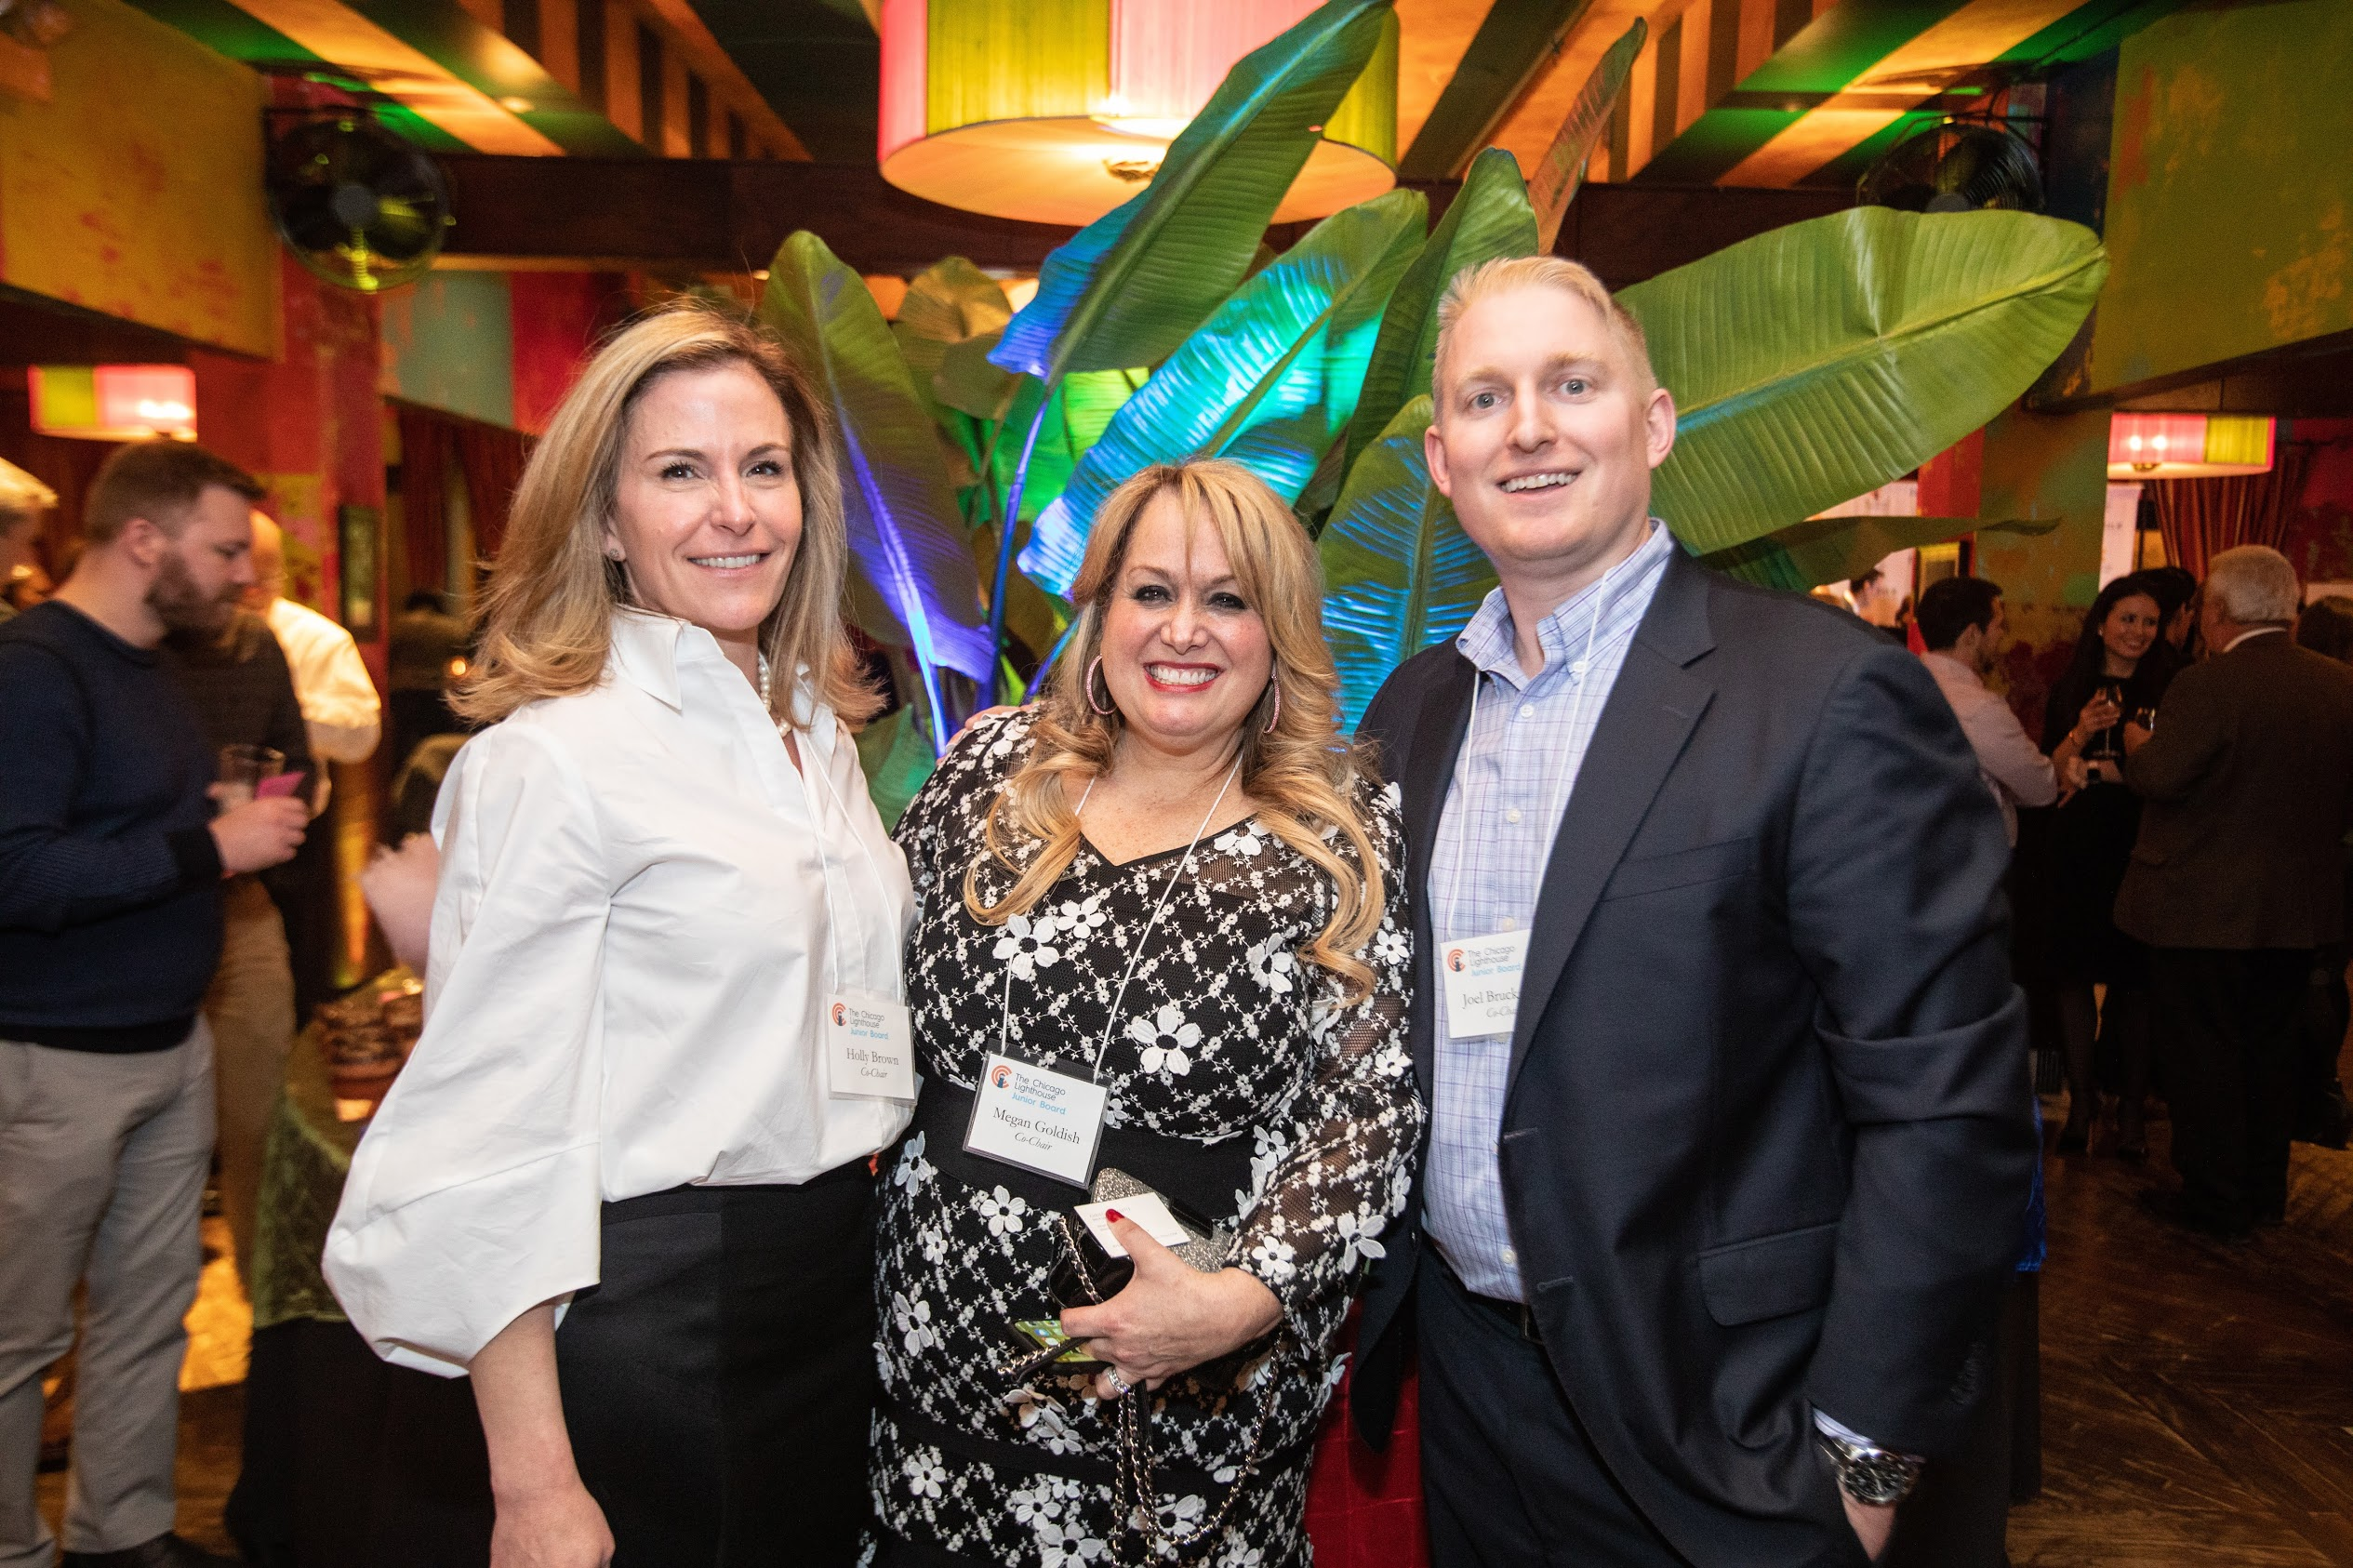 Holly, Joel, and Meg at Sweets for Sight2020